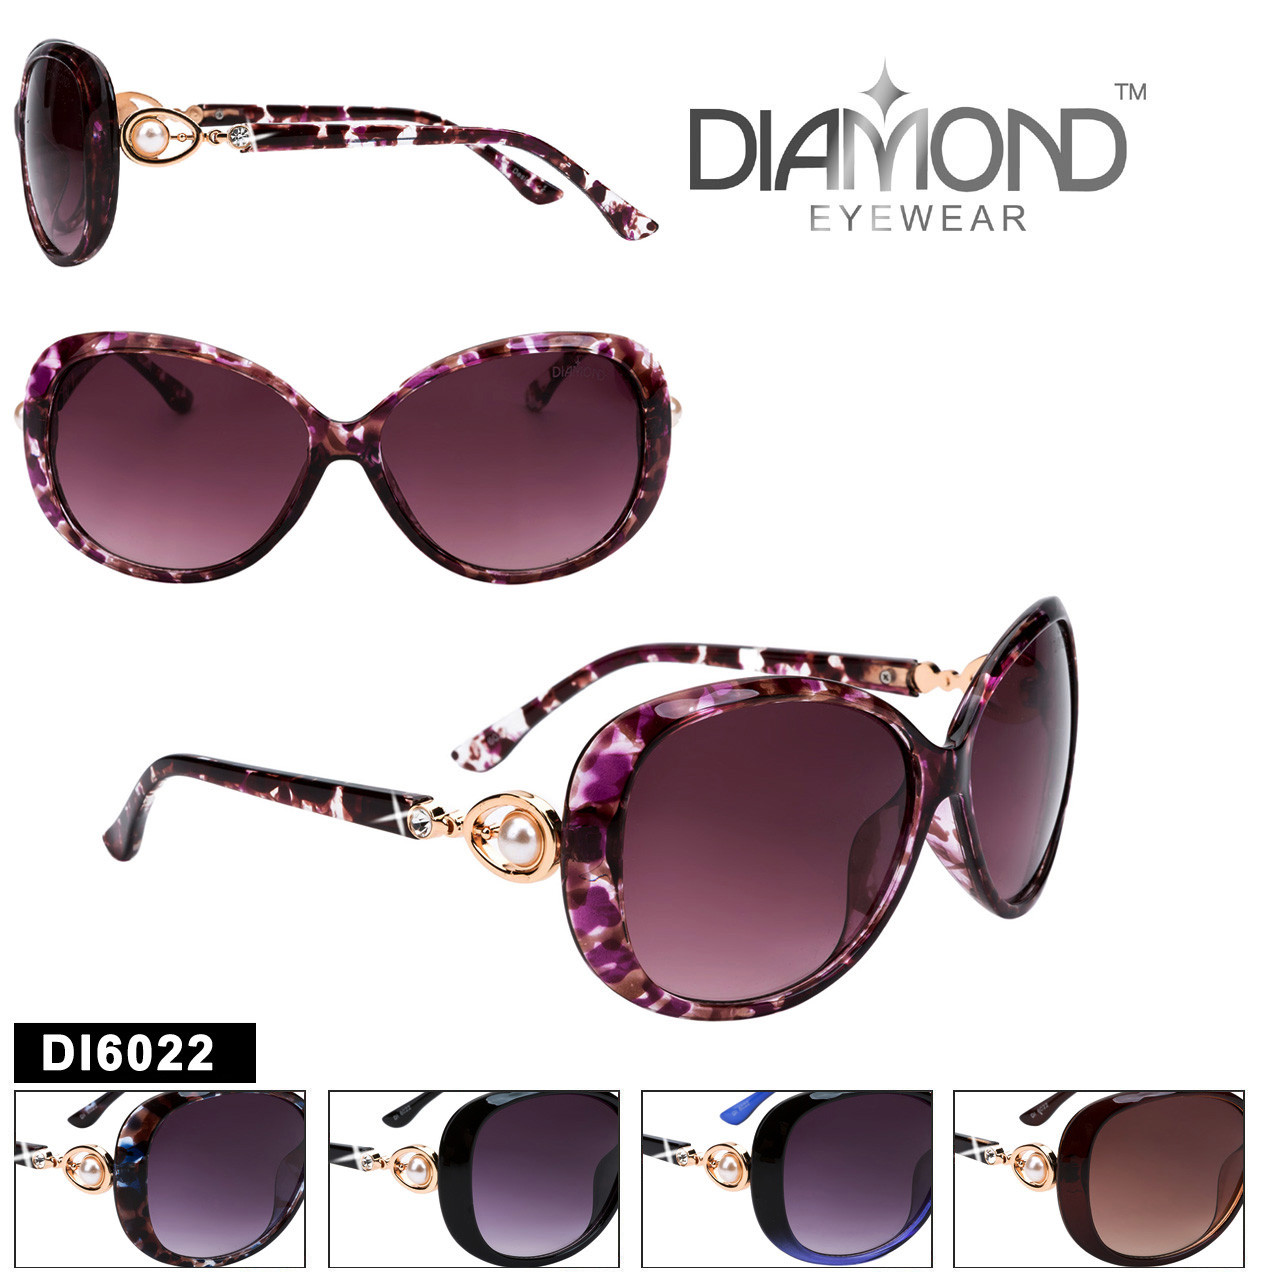 Diamond™ Rhinestone Sunglasses - DI6022